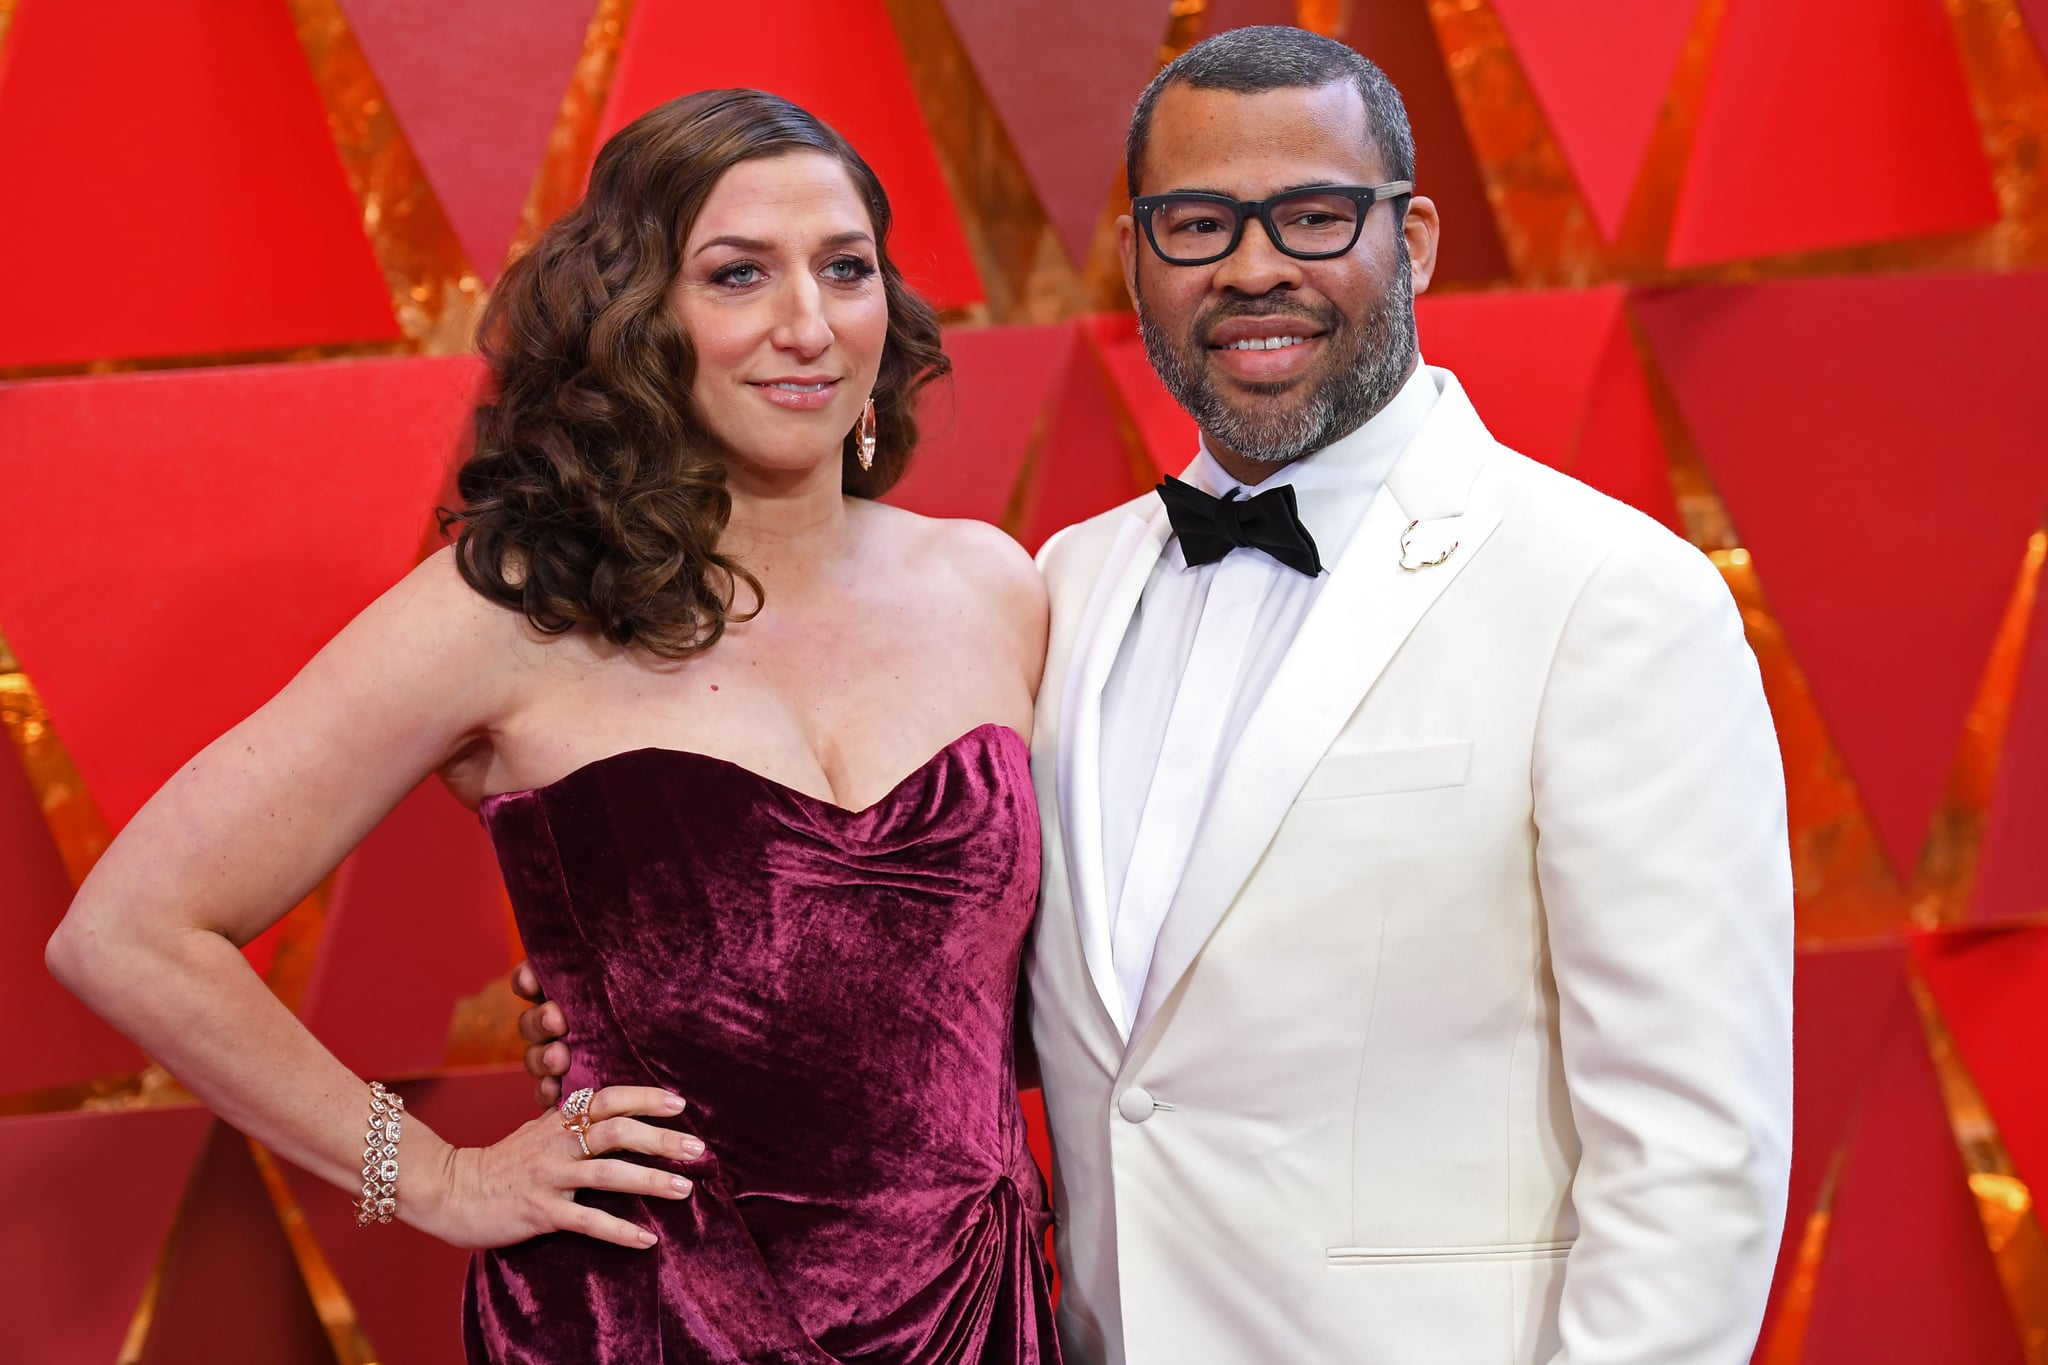 Jordan Peele opens up about historic win at 2018 Oscars